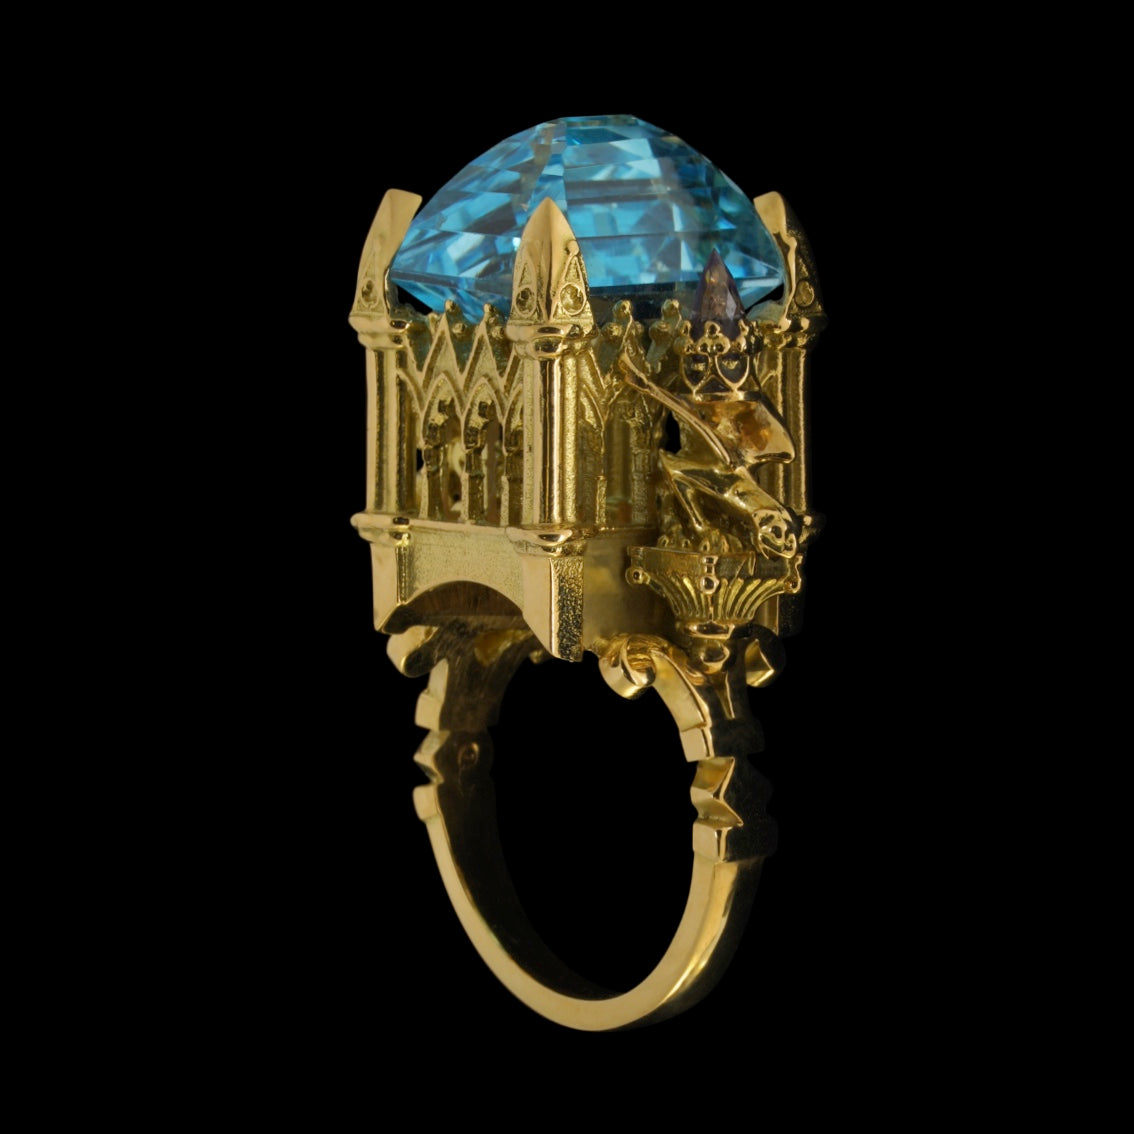 LA GARGOUILLE CATHEDRAL RING